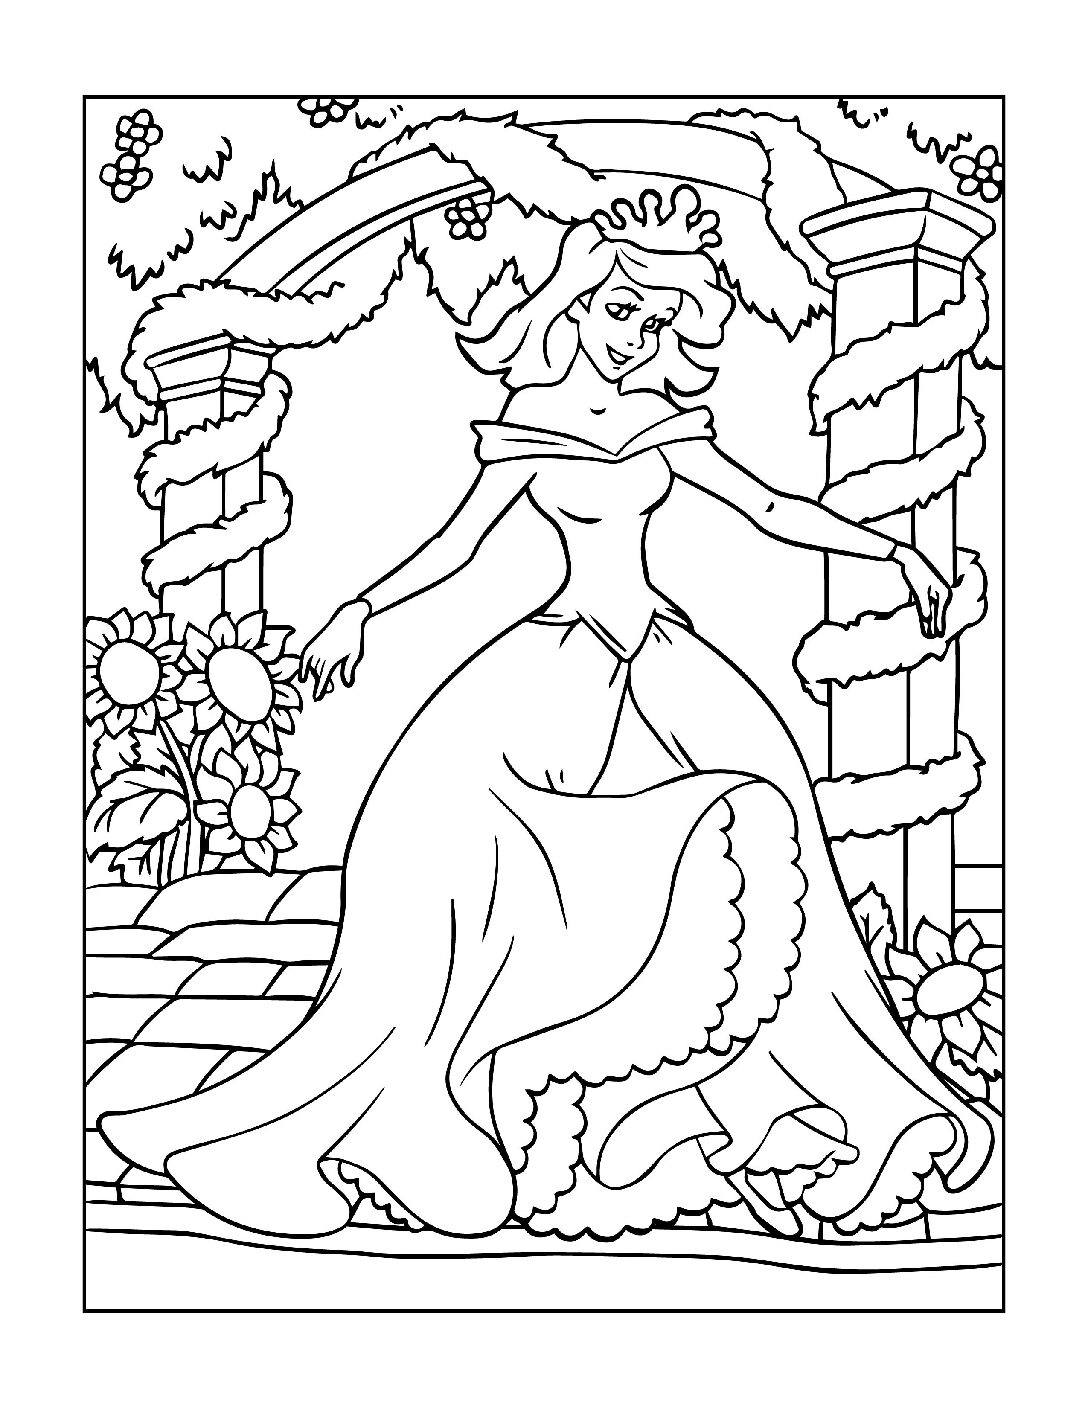 Coloring-Pages-Princess-15-01-pdf Free Printable Princesses Colouring Pages